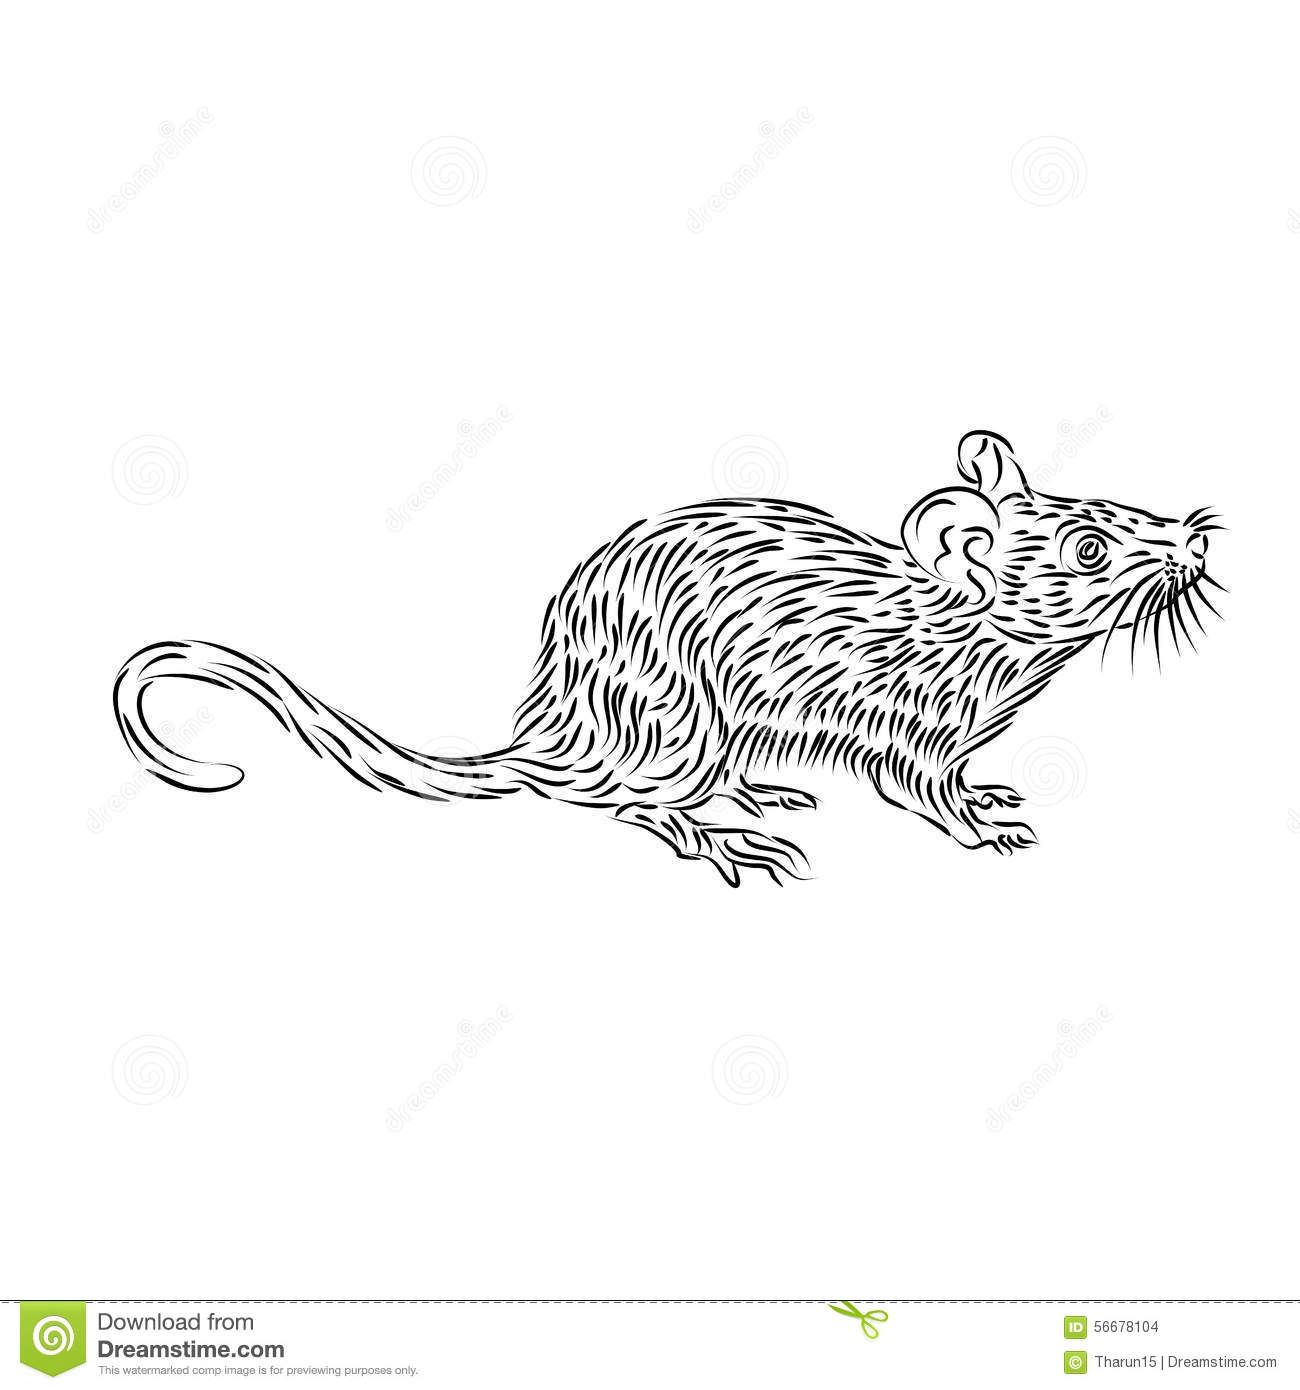 Line Drawing Mouse : Line drawing of a house mouse stock illustration